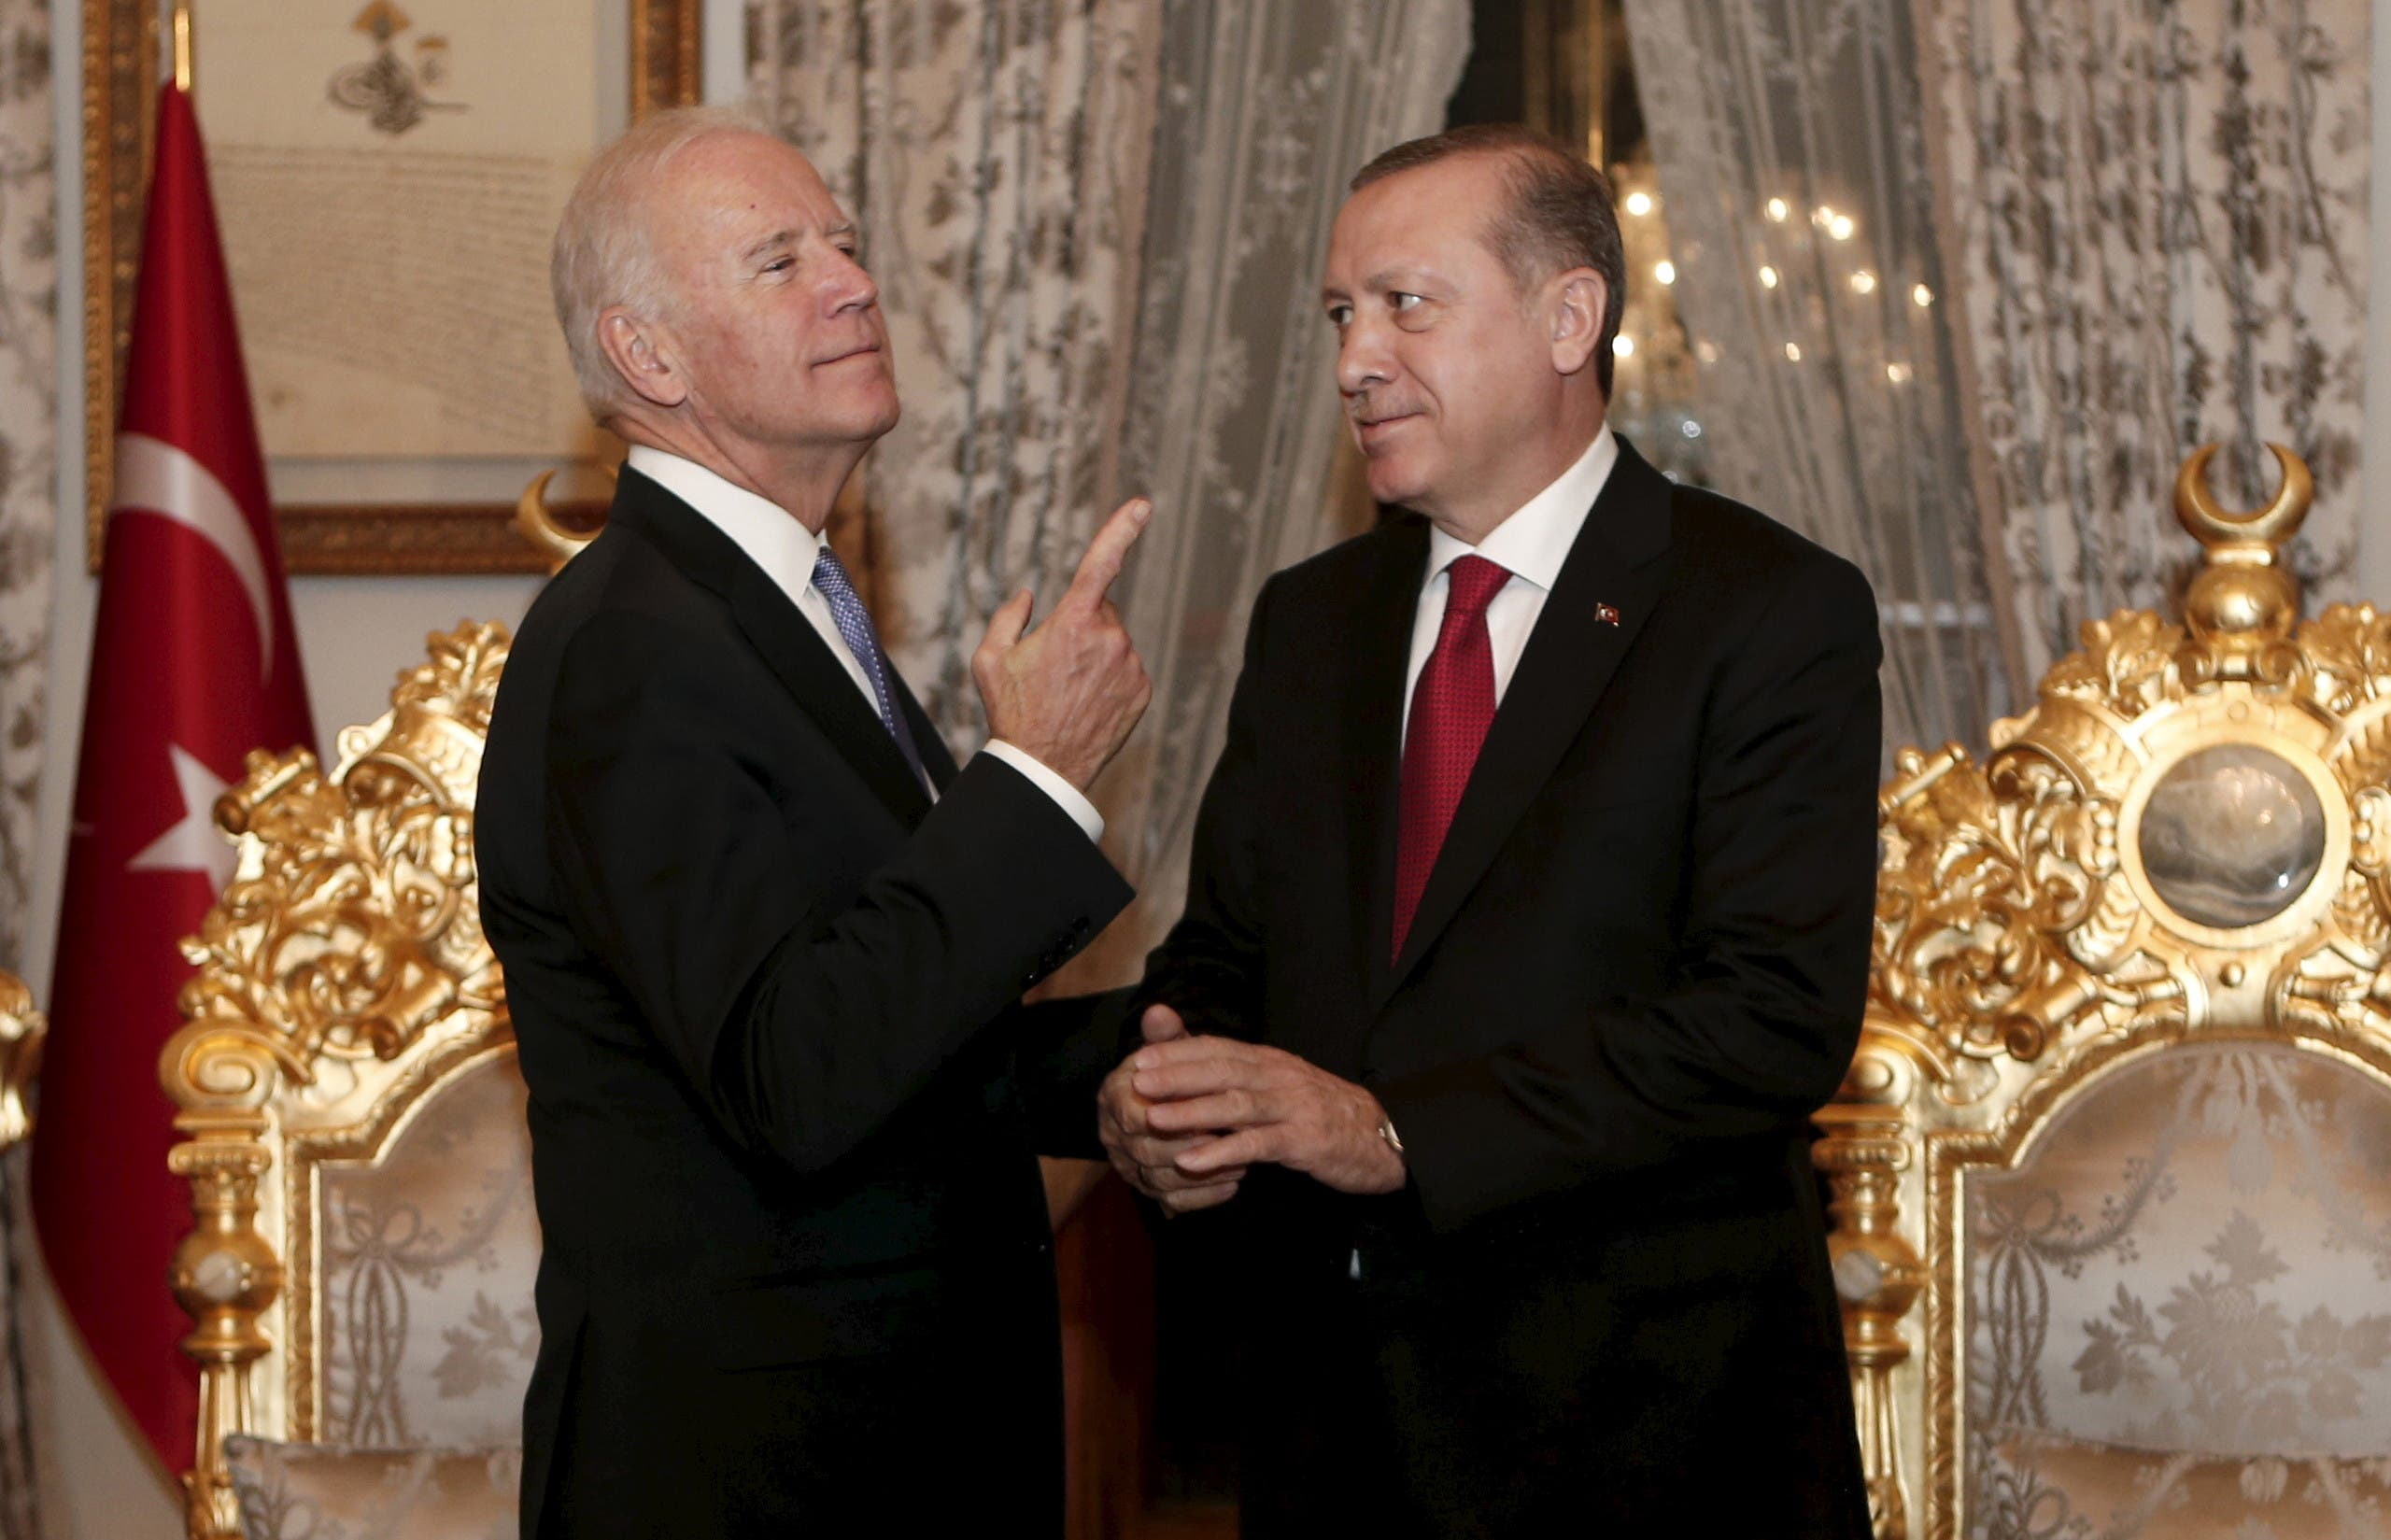 Turkish President Tayyip Erdogan (R) and  Joe Biden chat after their meeting in Istanbul, Turkey January 23, 2016. (File photo: Reuters)